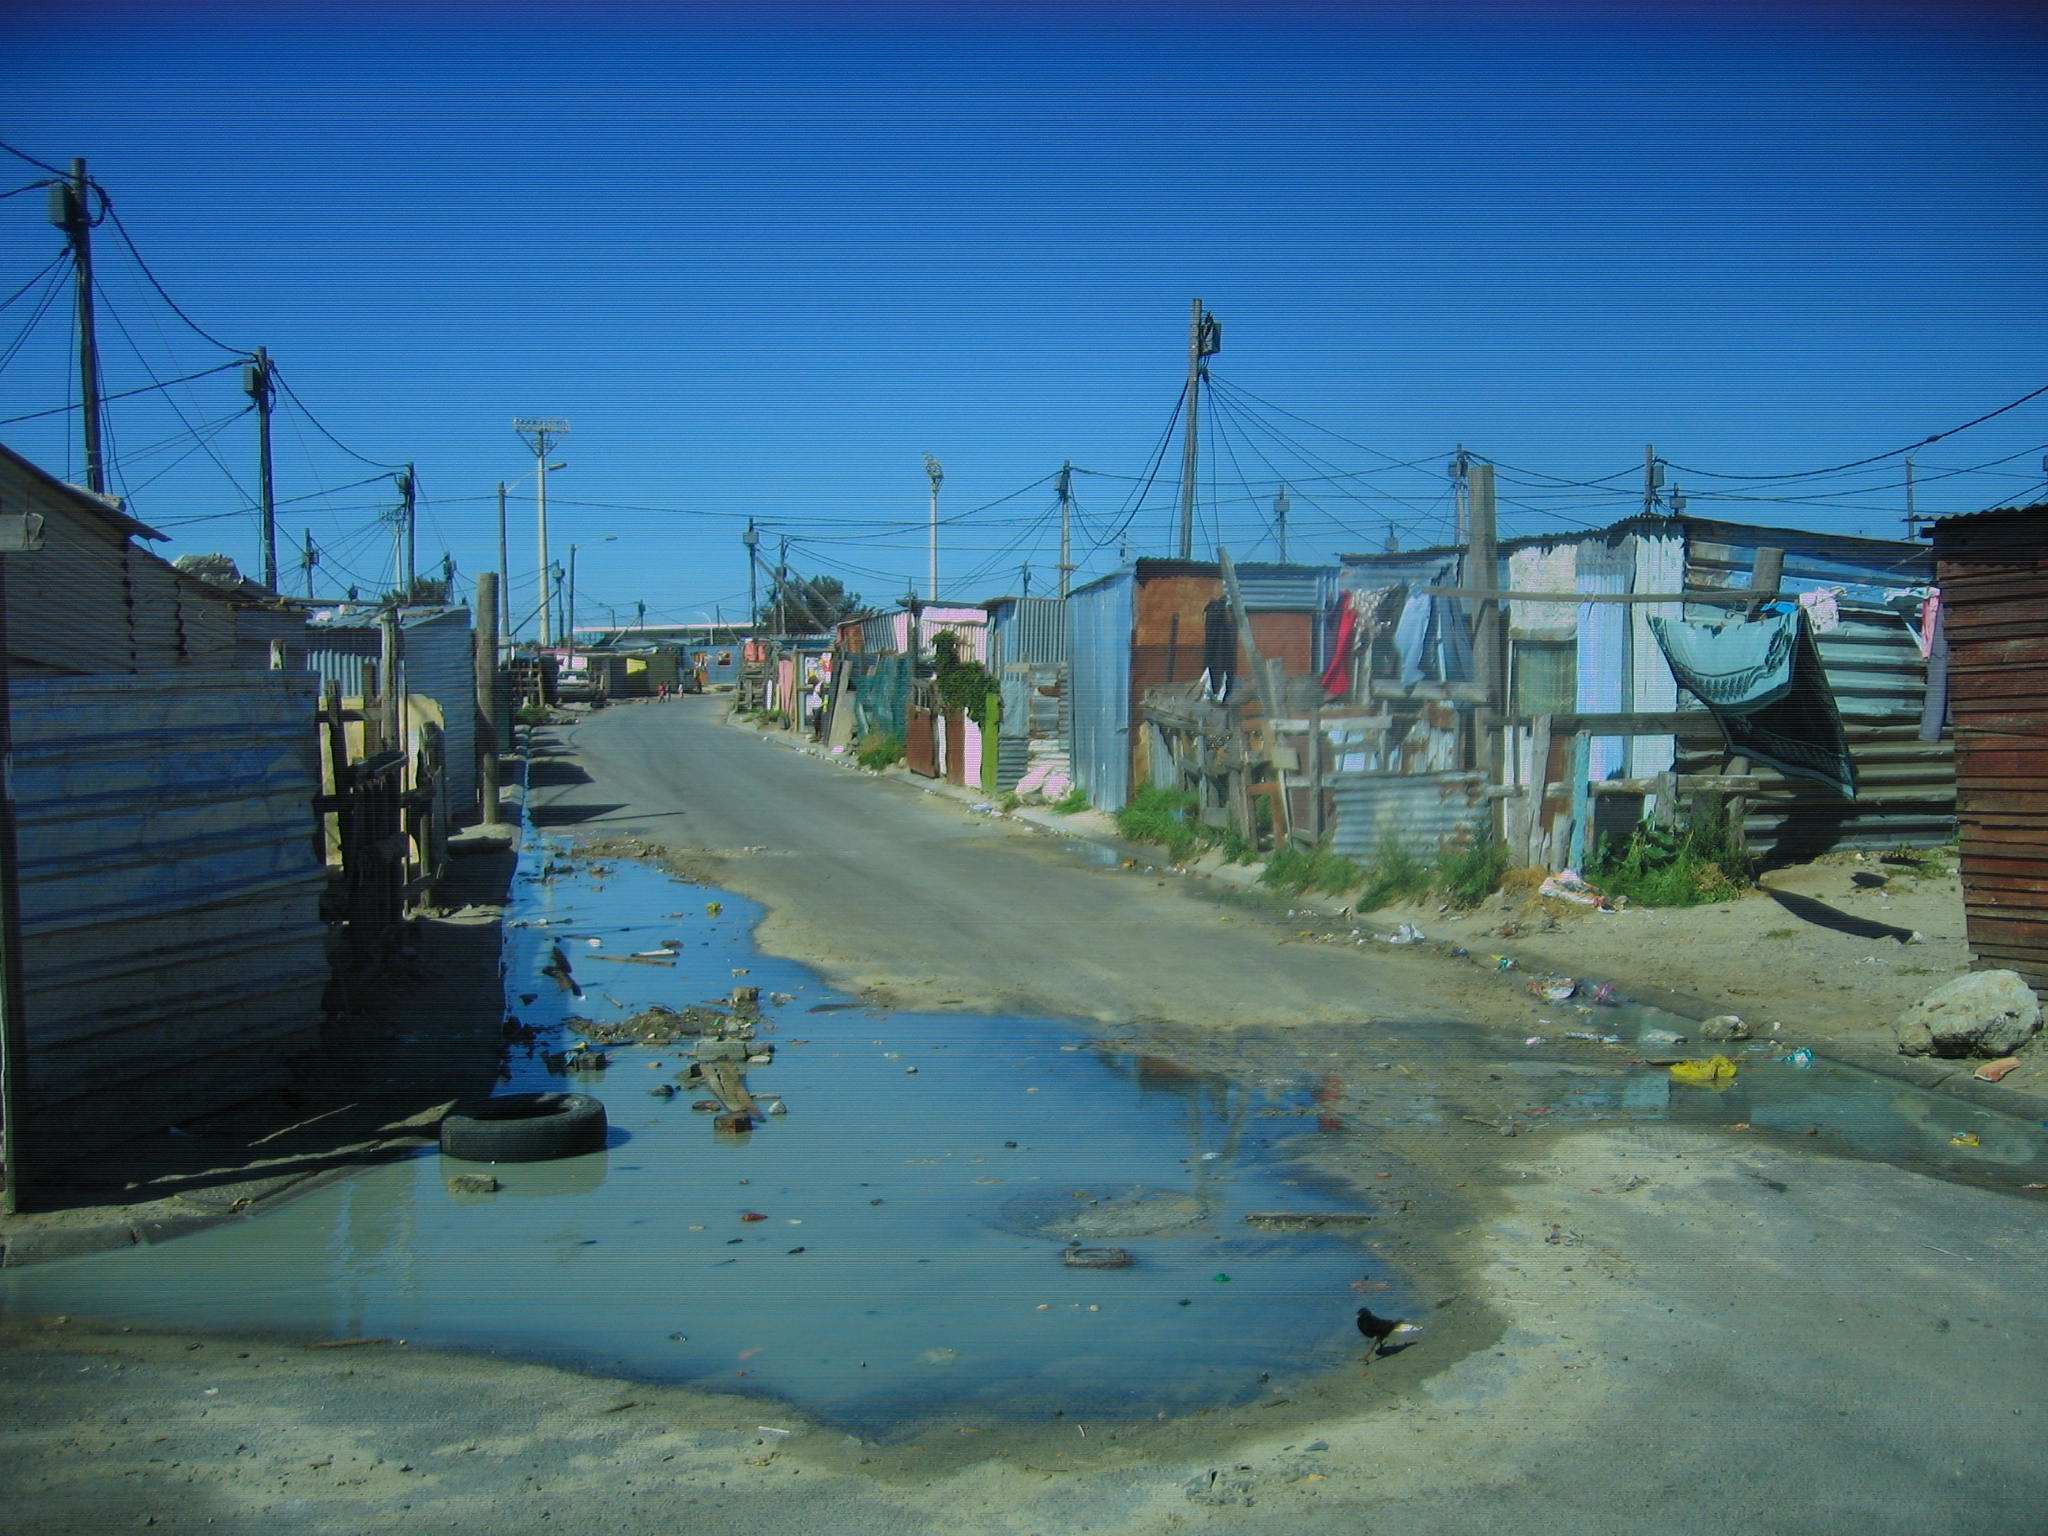 Philippi  Alcohol Development and Poverty in South Africa